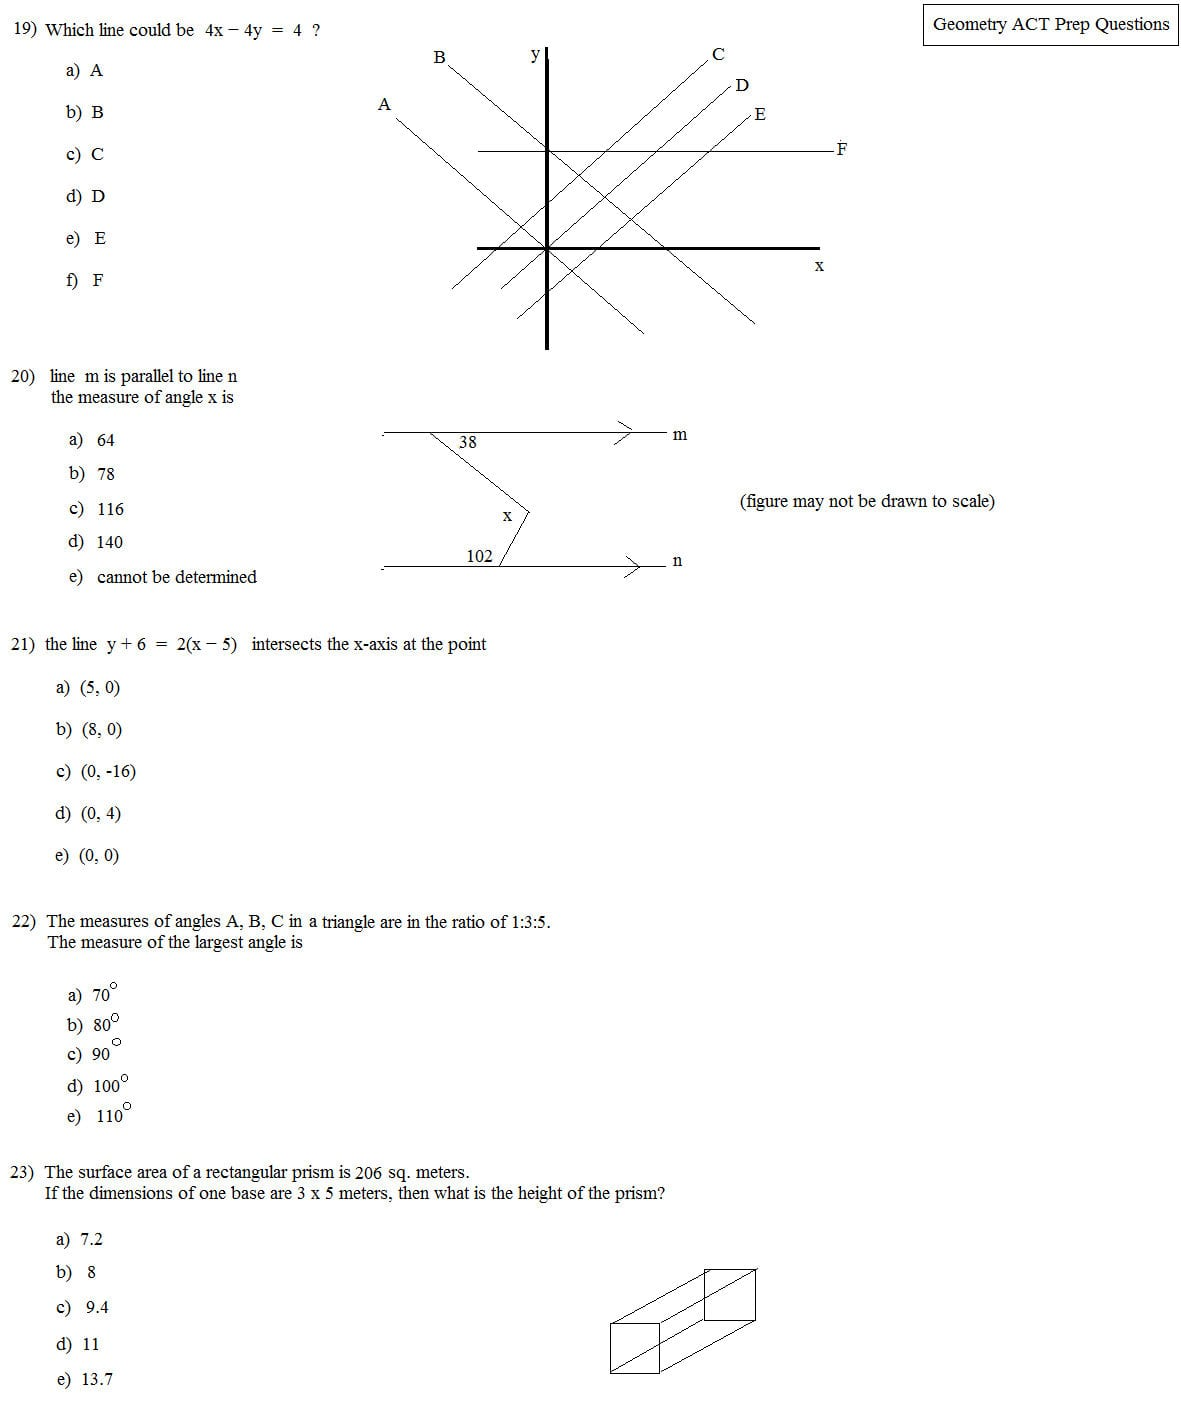 Math Plane  Act Geometry Practice Questions Intended For Act Math Practice Worksheets